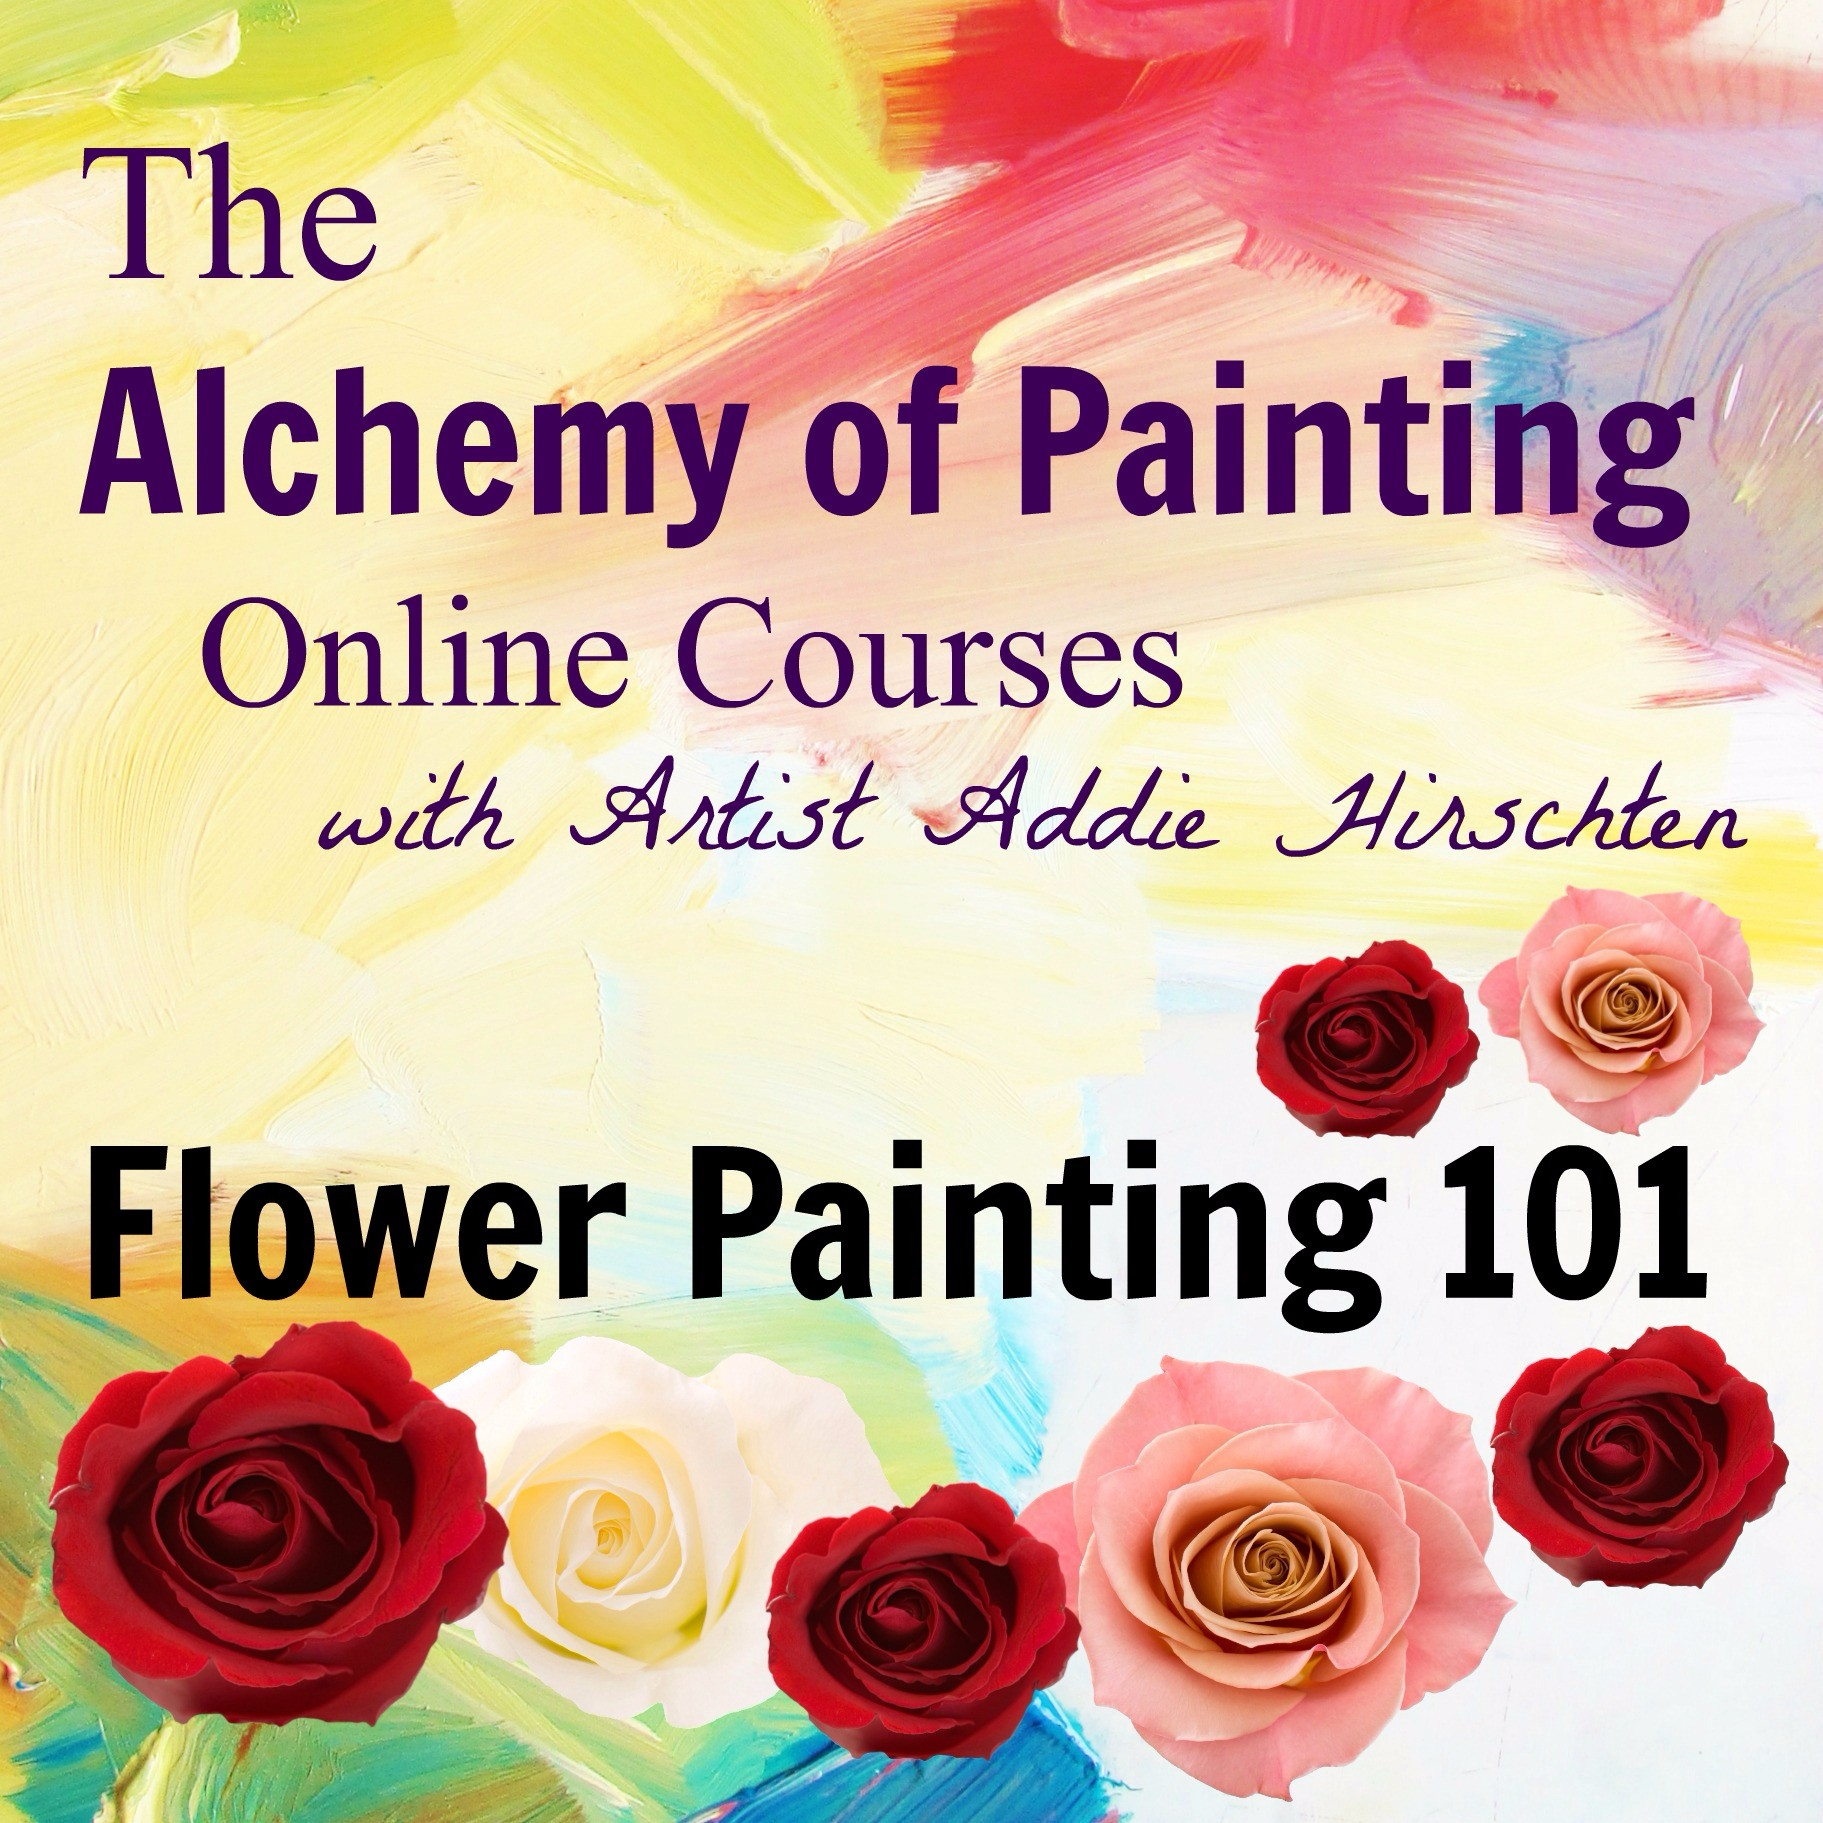 flower painting 101 the alchemy of painting